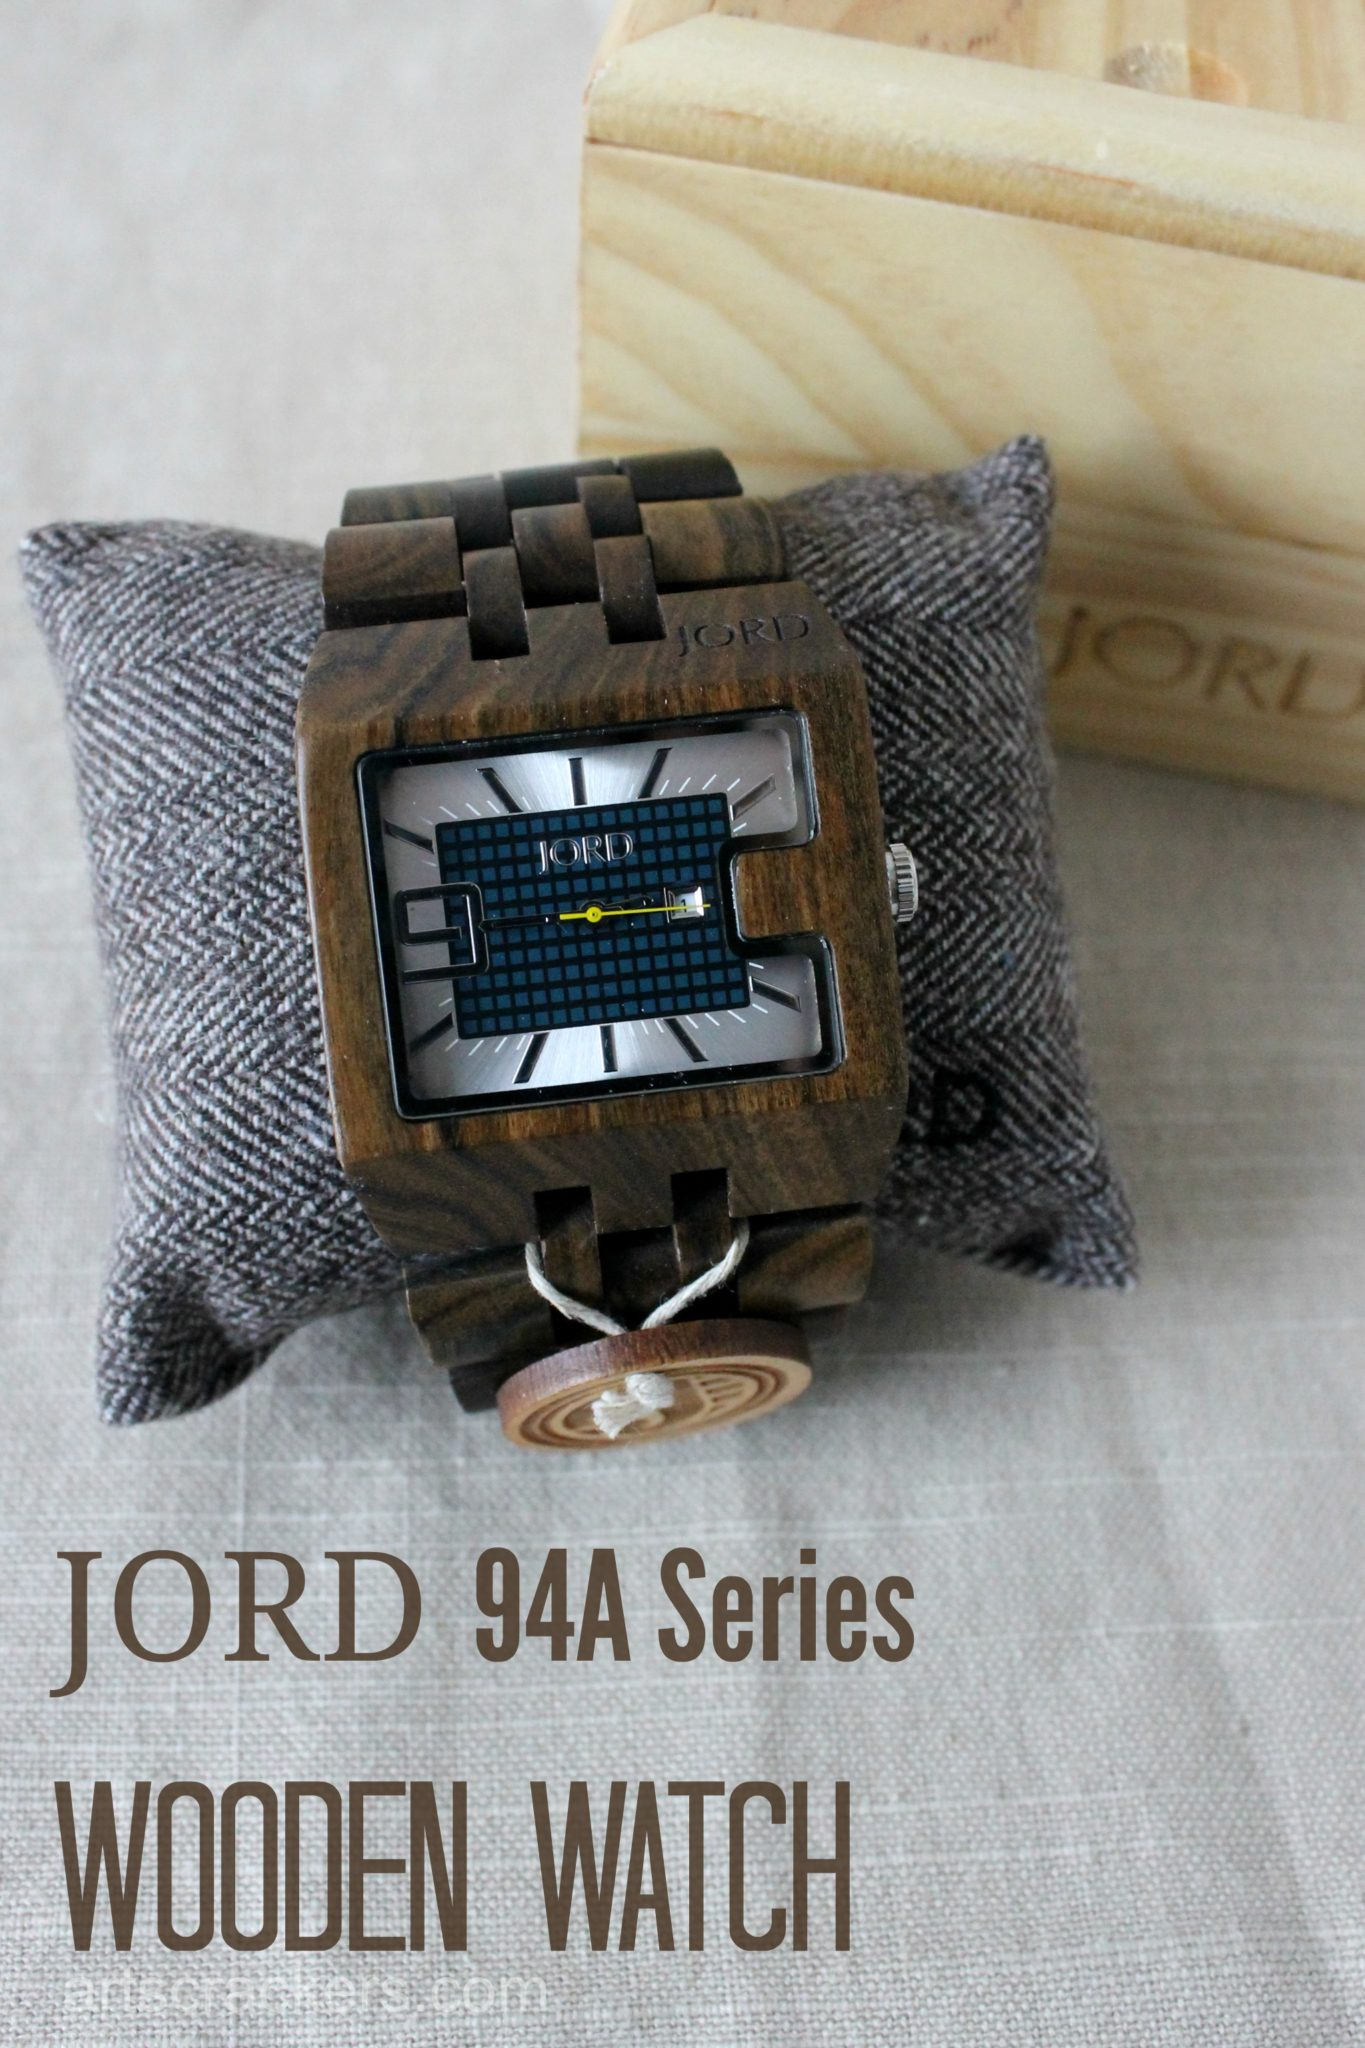 JORD Wooden Watch 94A Series Chocolate